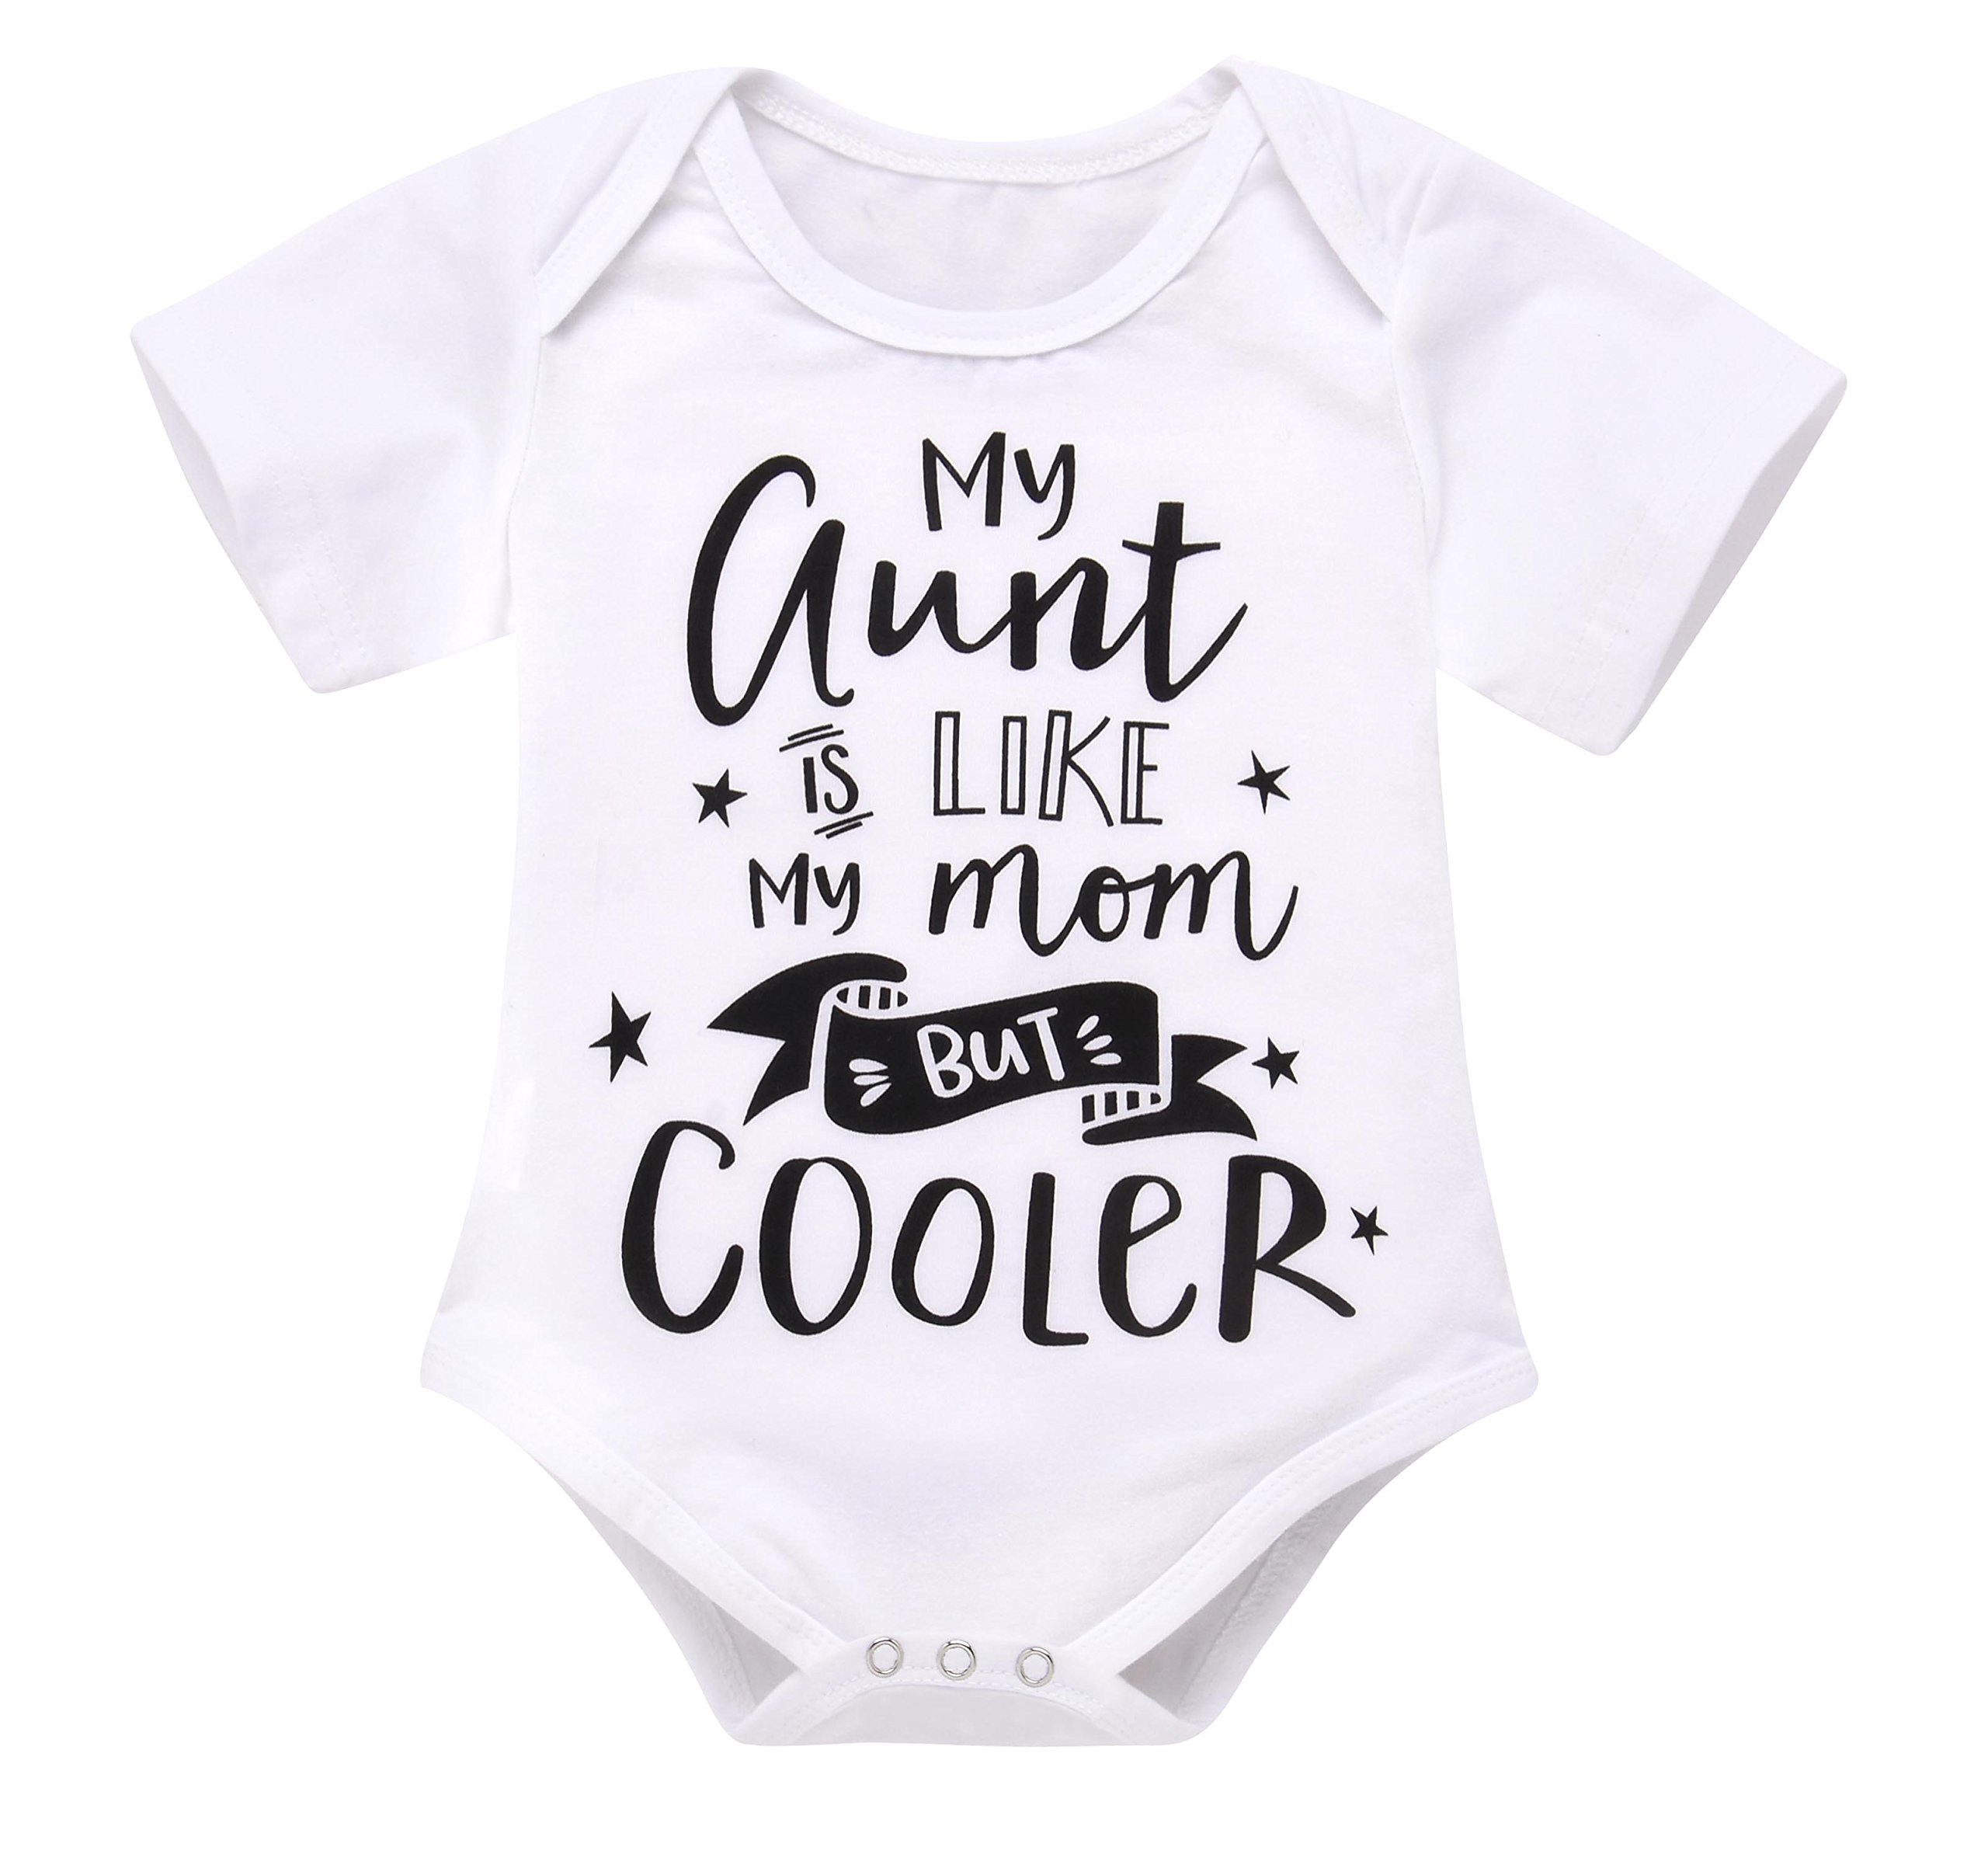 Seven Young Infant Baby Bodysuit,Newborn Boys Girls Short Sleeve Aunt Romper Playsuit Outfit Clothes (White, 3-6 Months)